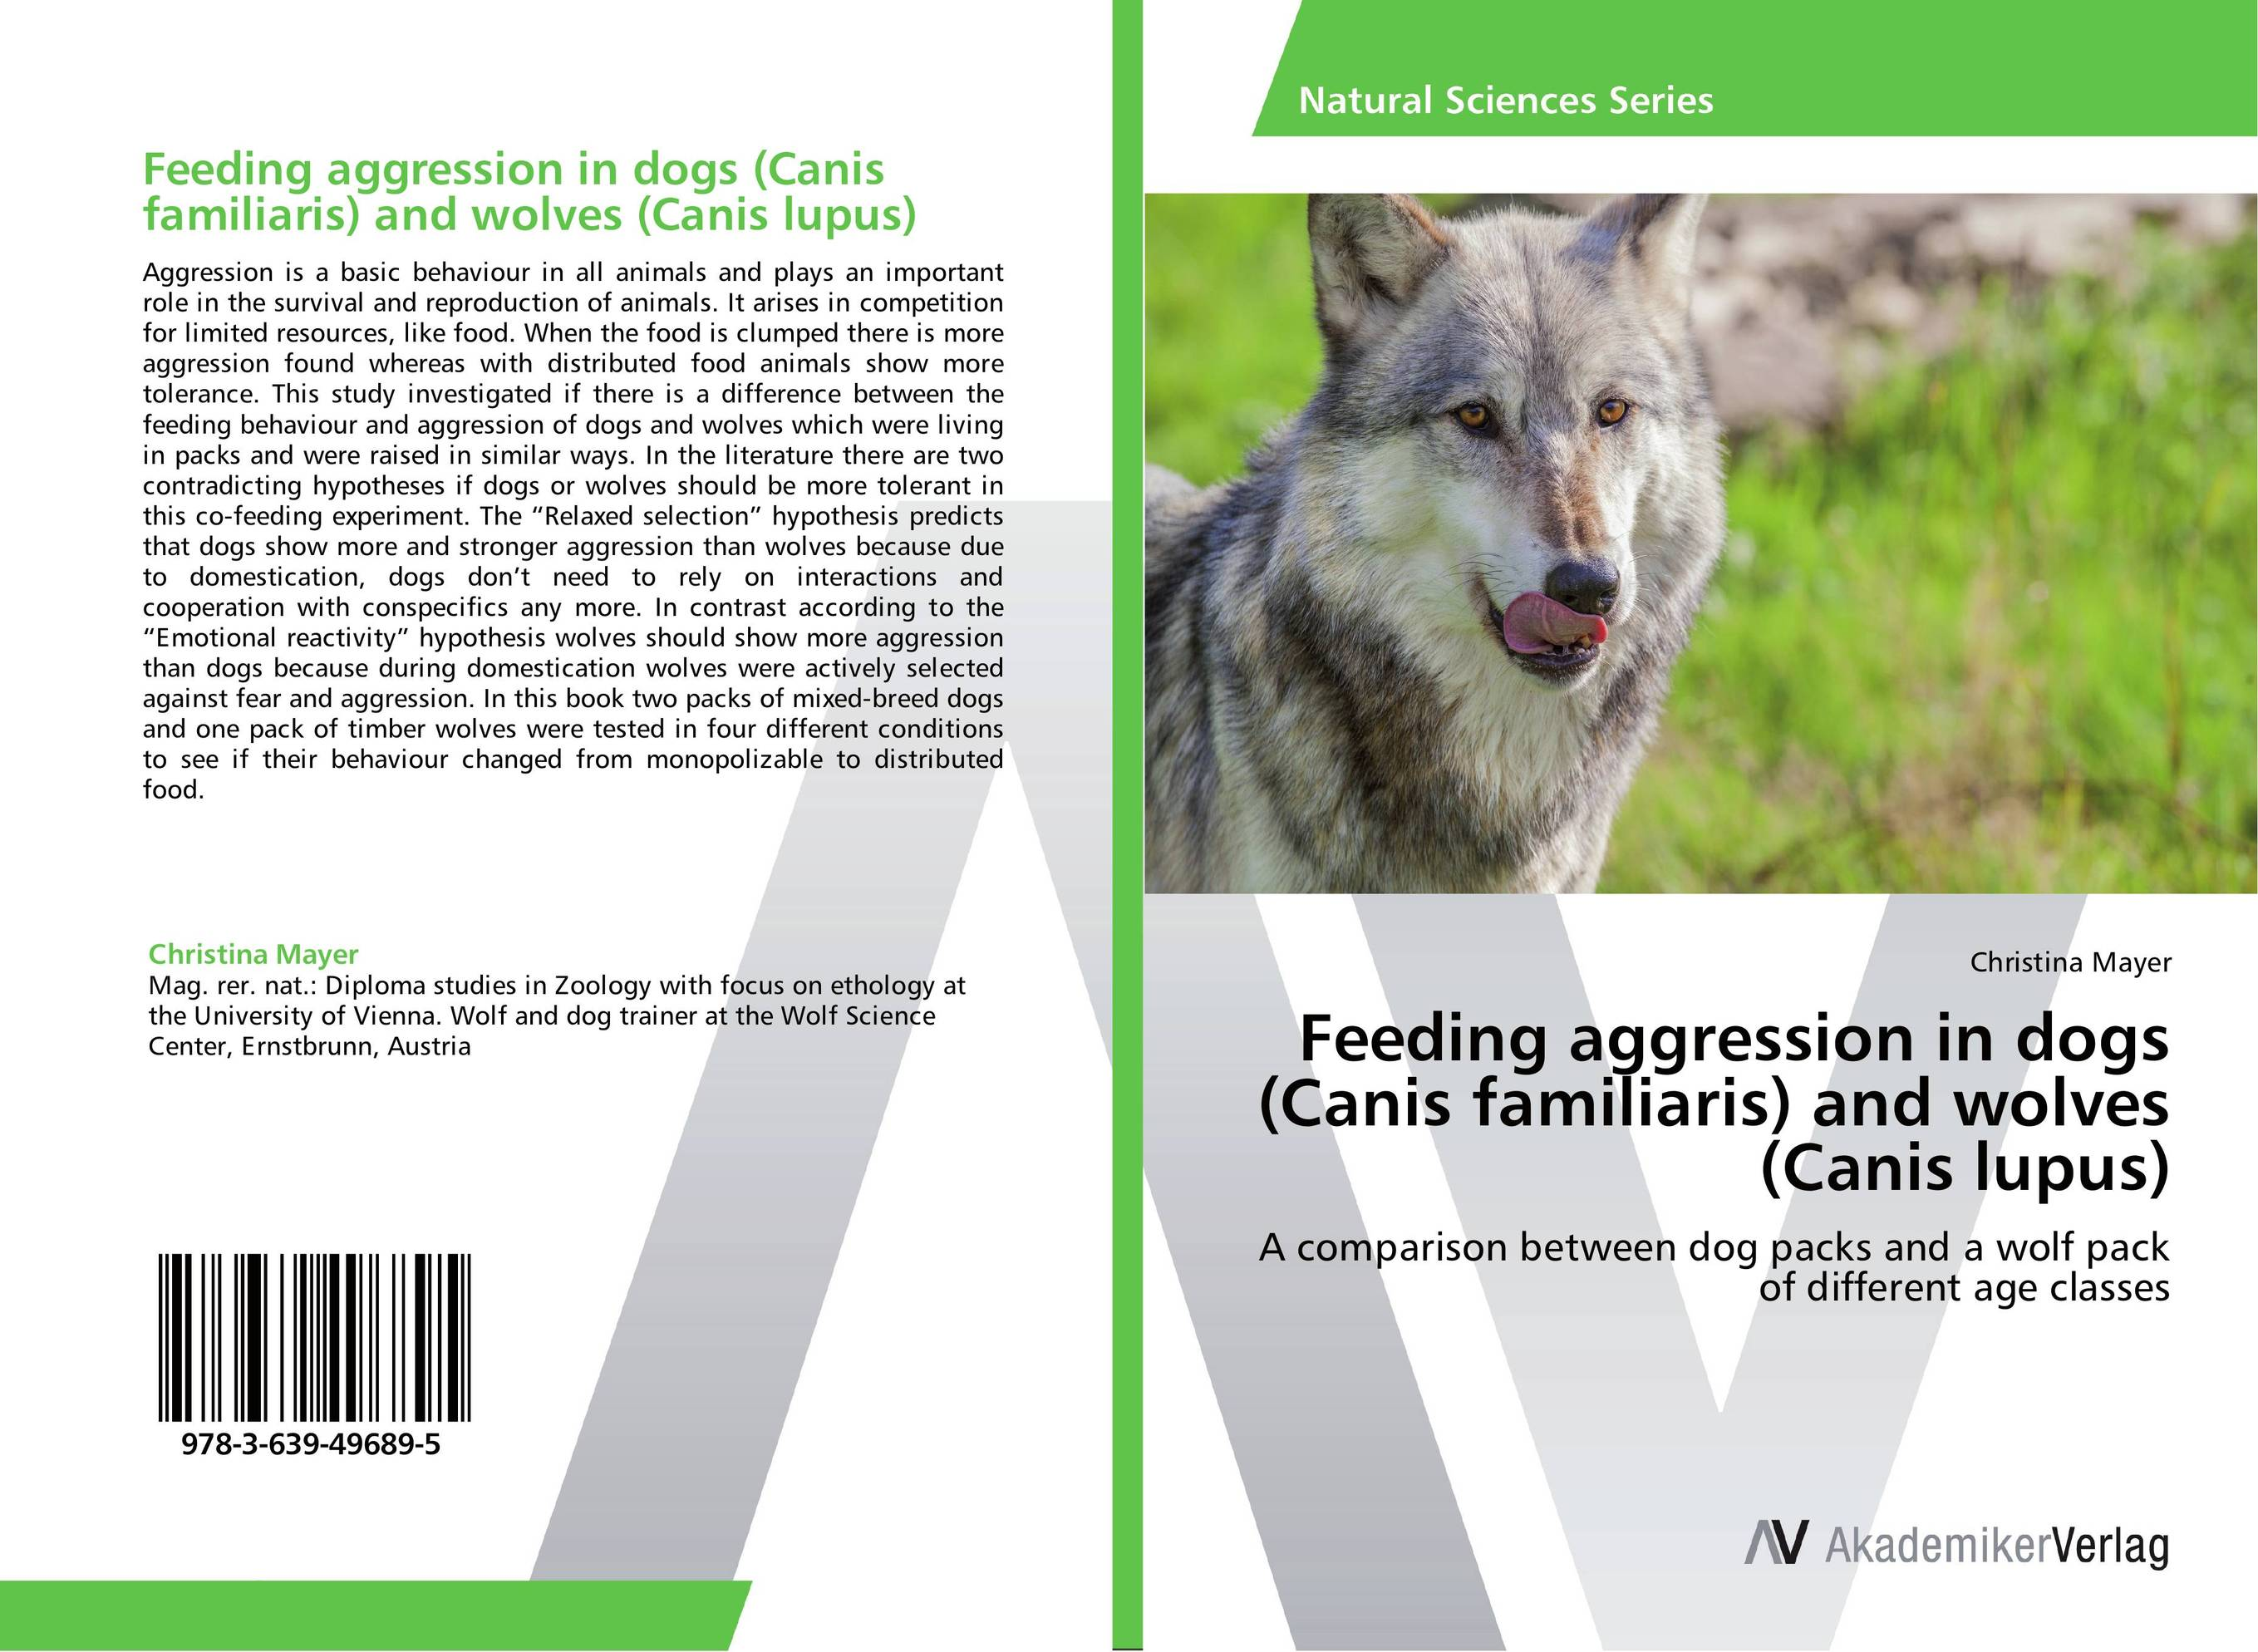 Feeding aggression in dogs (Canis familiaris) and wolves (Canis lupus) neoplasms in dogs